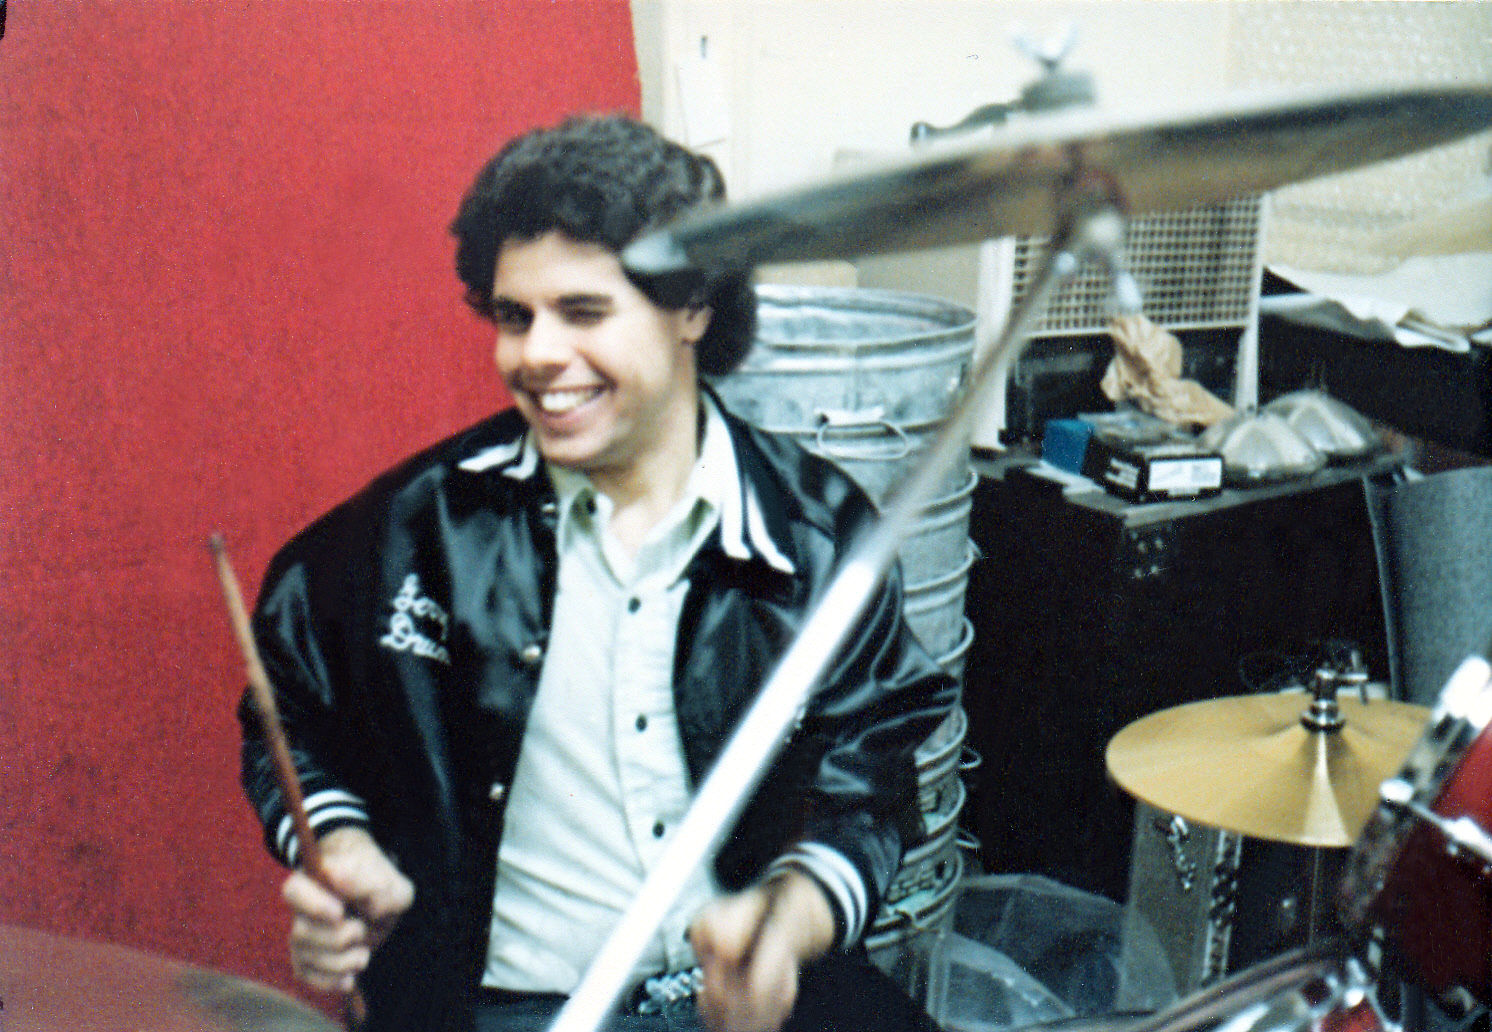 Gerry drums at the music mall 1981